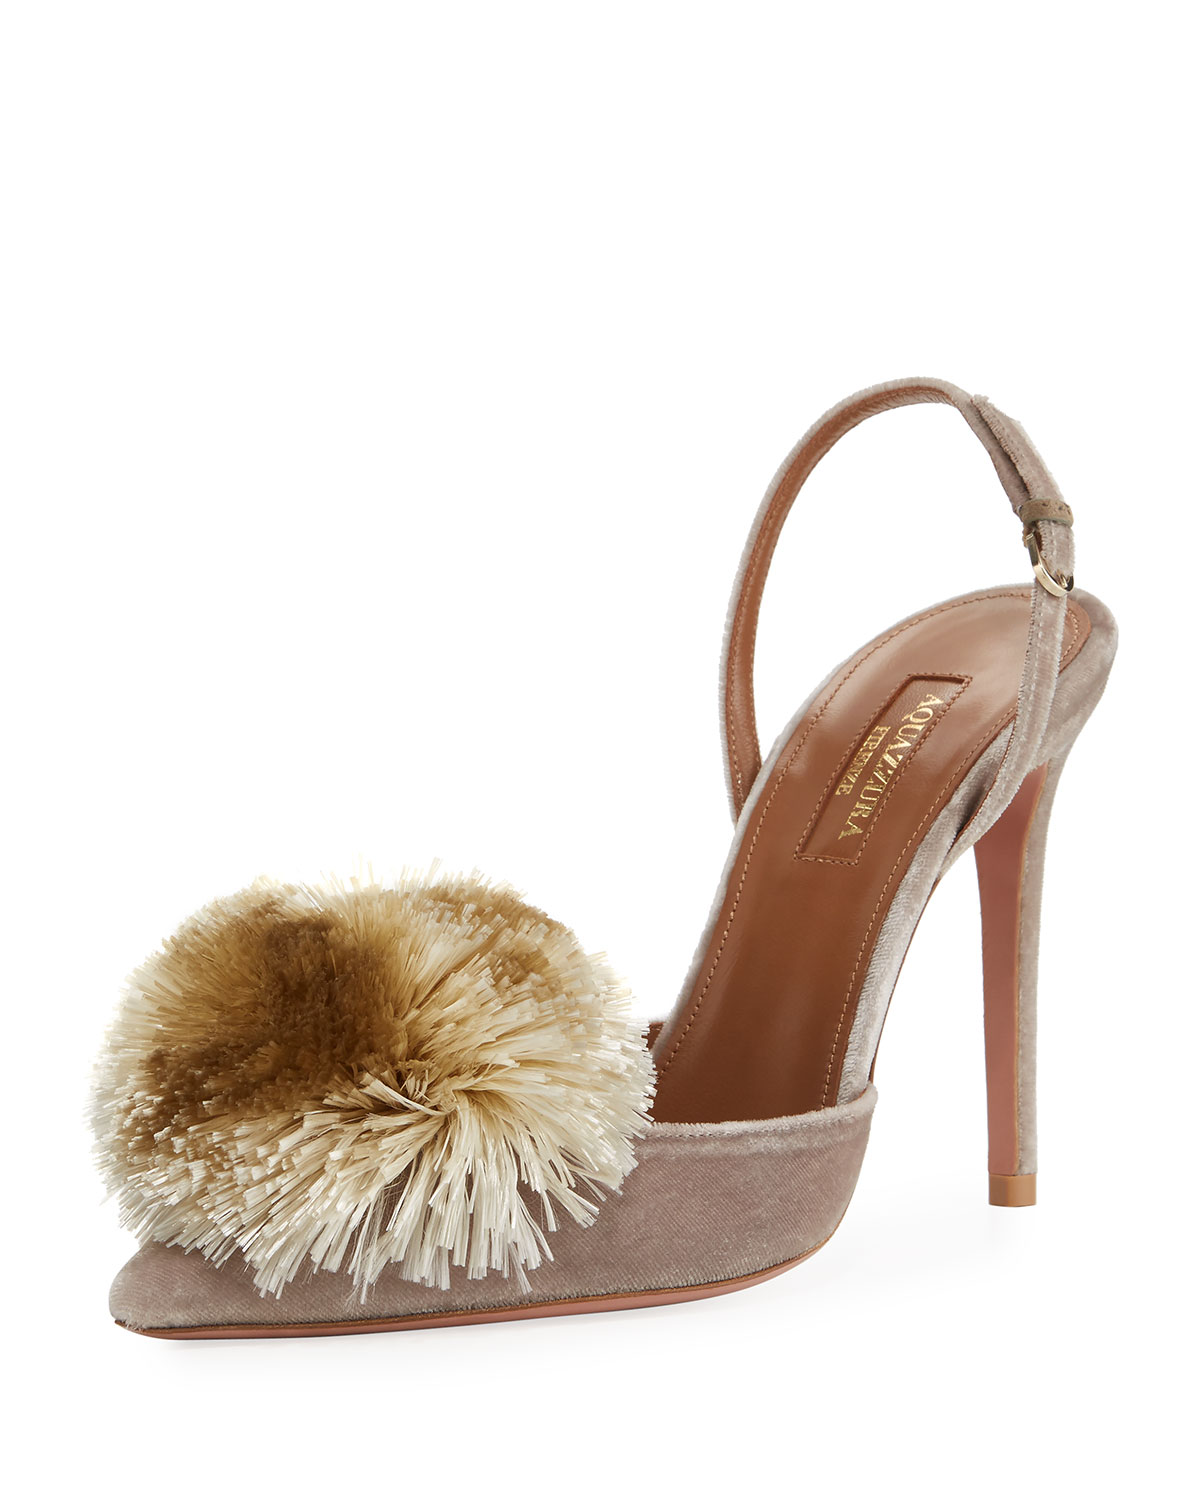 41e56731ff Aquazzura Powder Puff Slingback 105mm Pump | Neiman Marcus